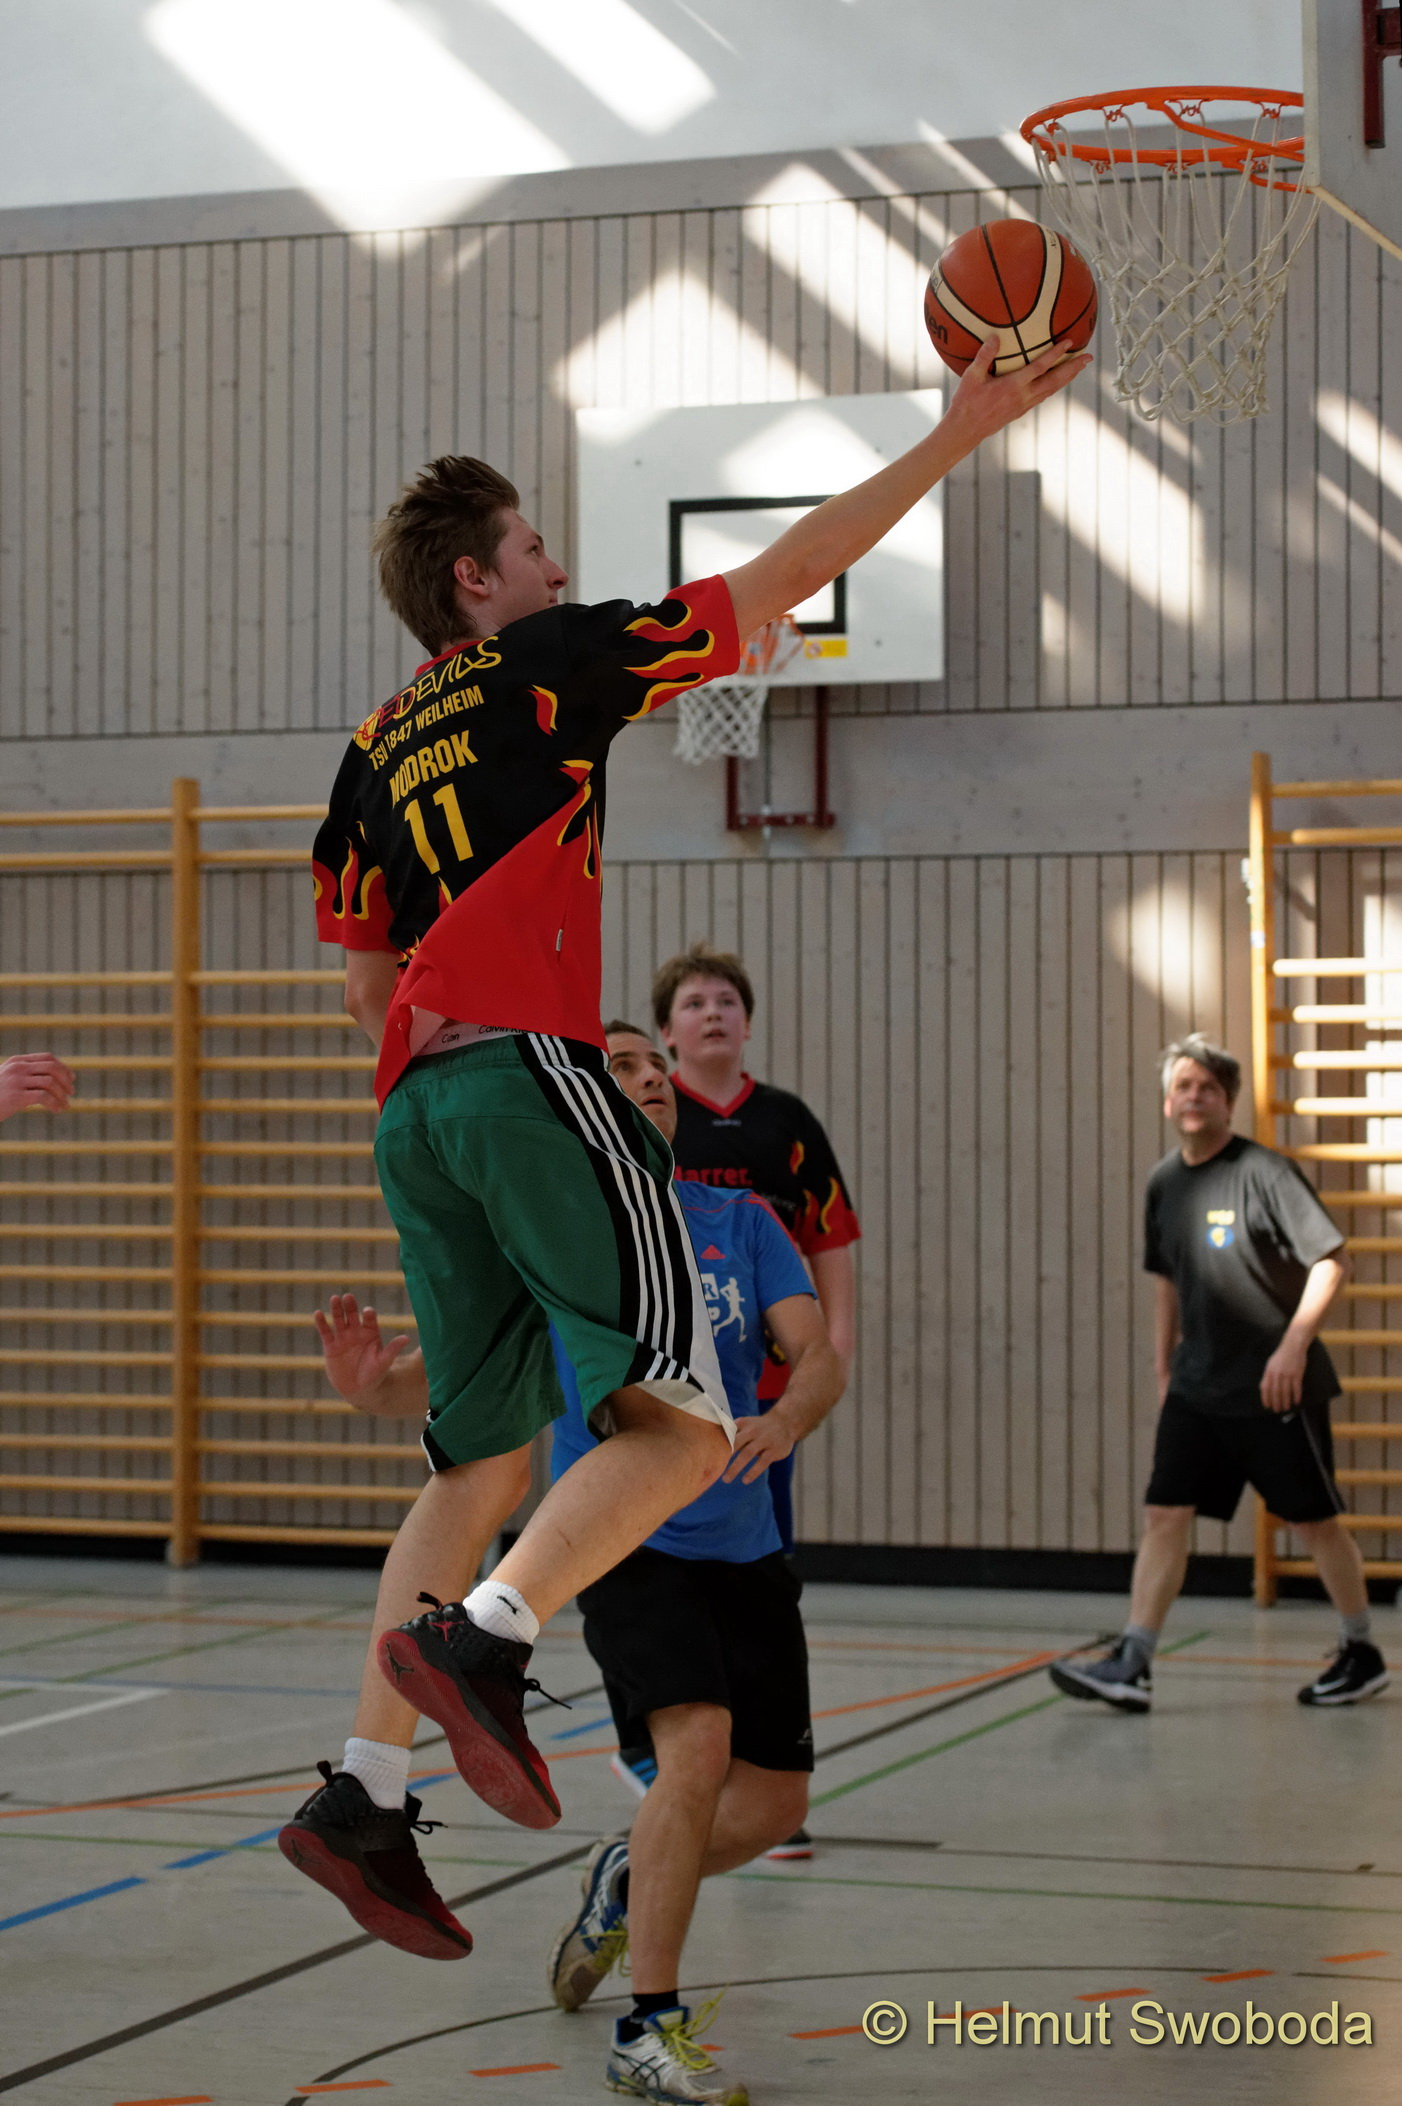 d170402-161509900-100-basketball_weilheim-mixed-turnier_33000553013_o